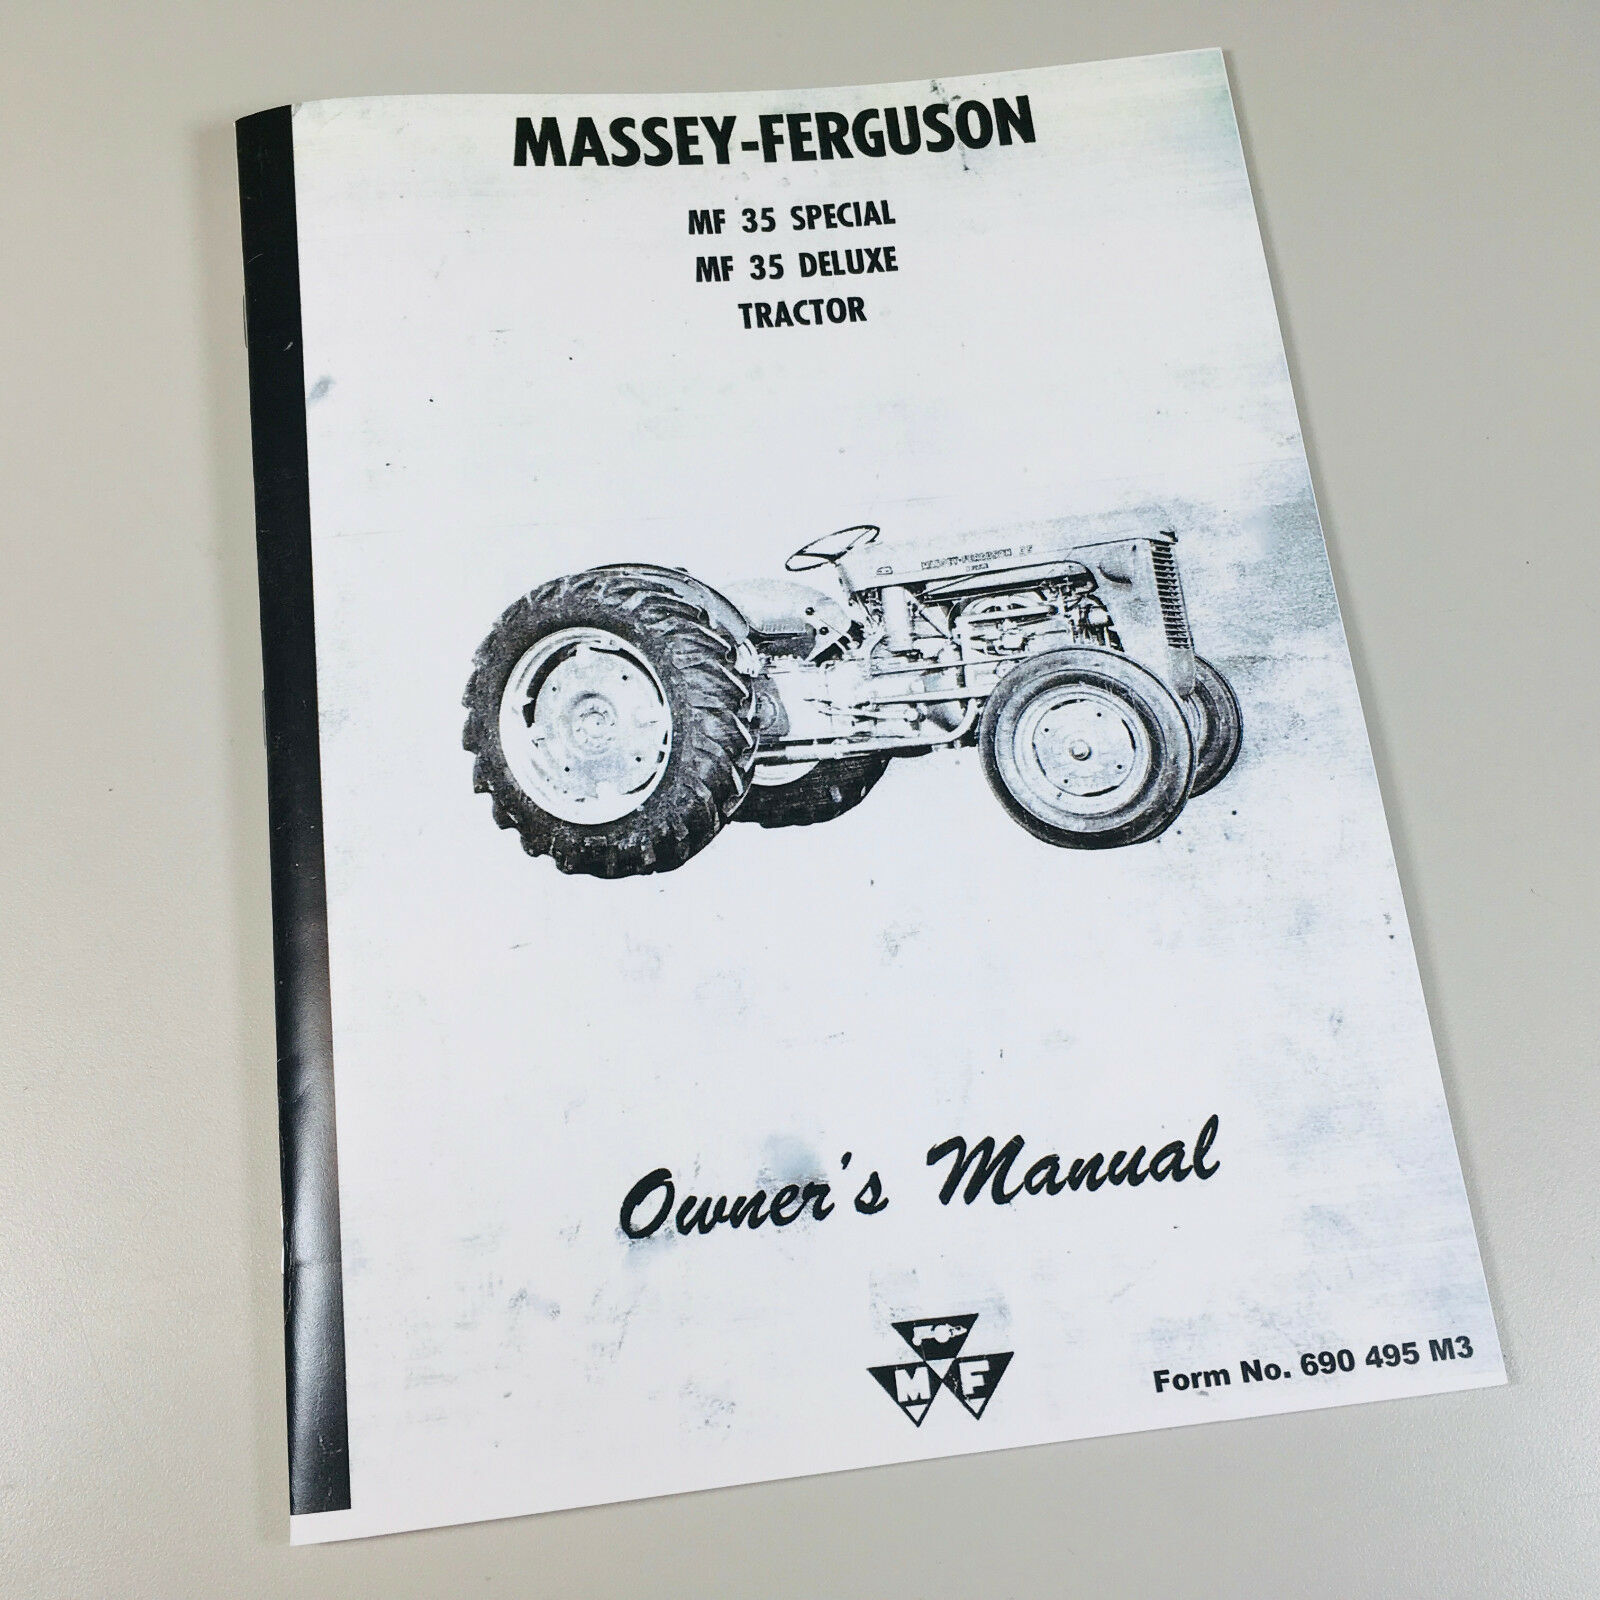 Massey Ferguson Mf 35 Special 35 Deluxe Tractor Owners Operators Manual 1  of 6FREE Shipping ...